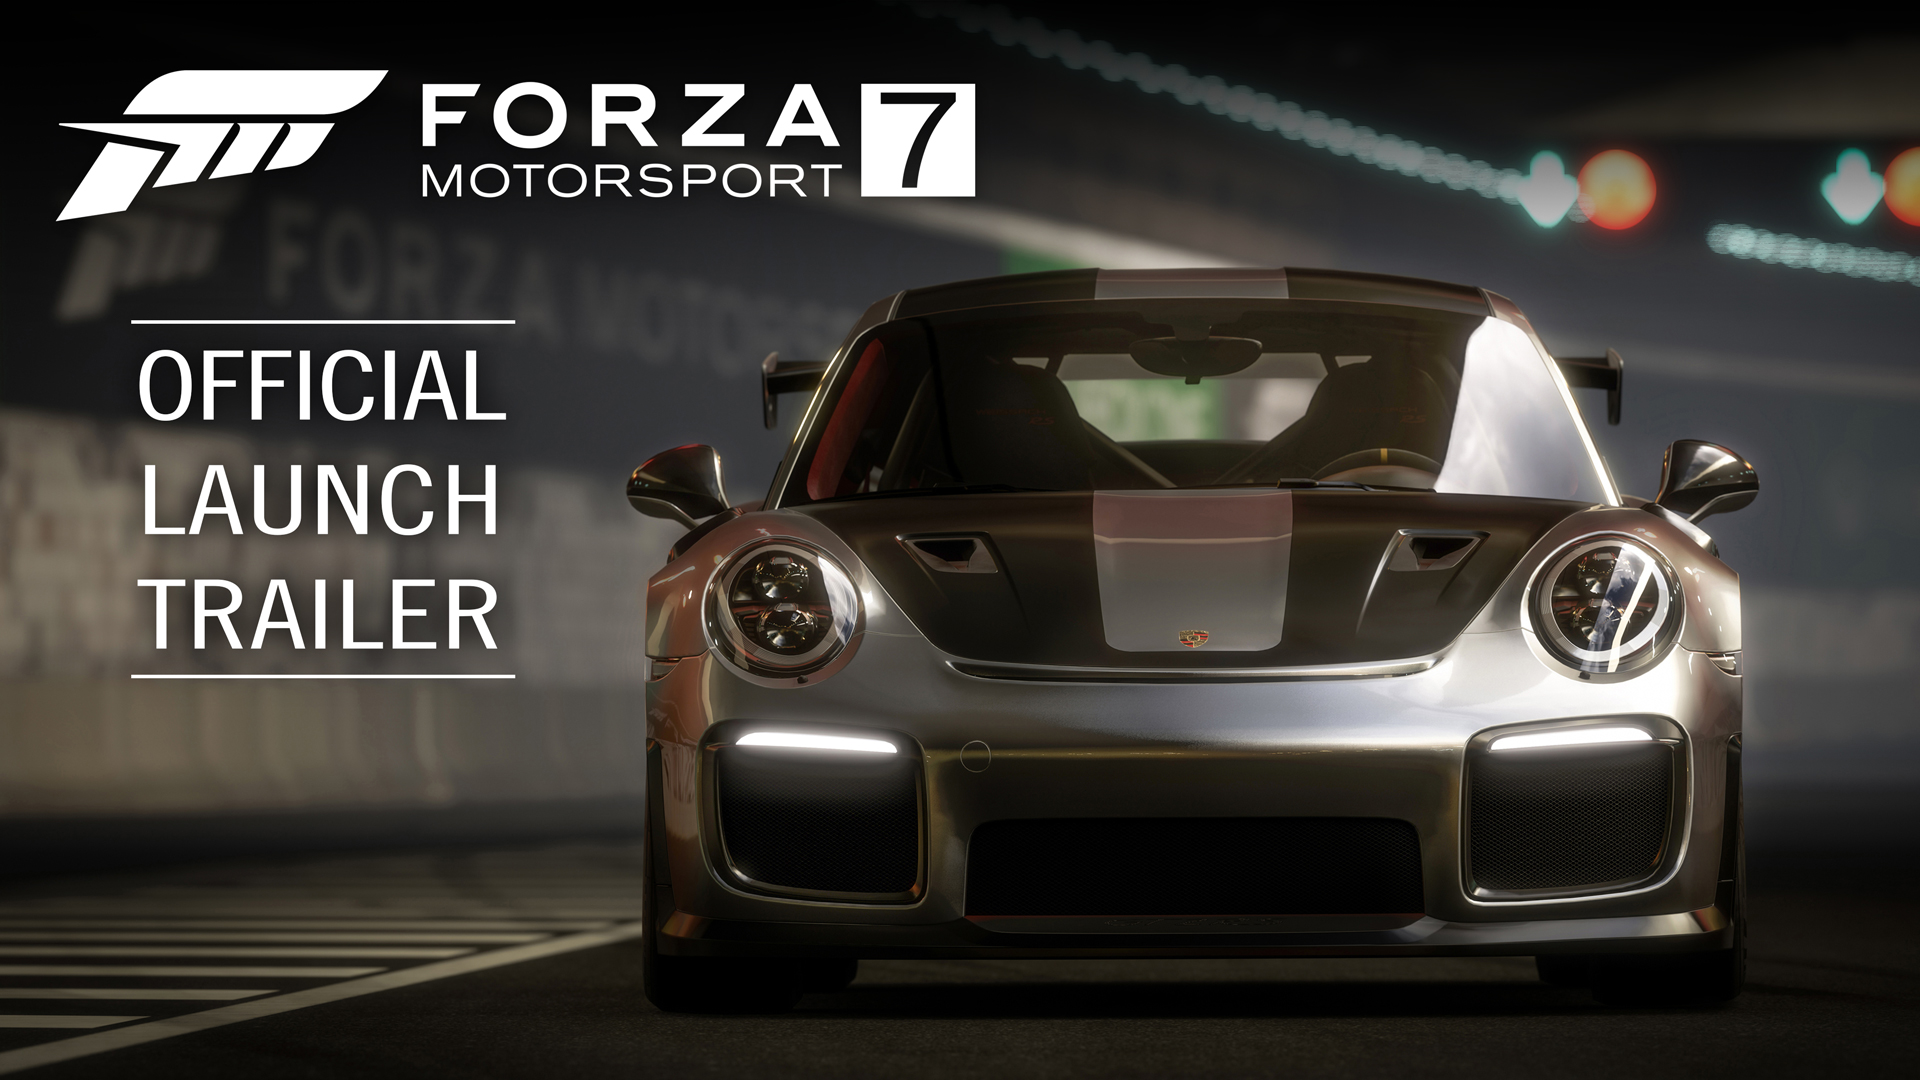 Forza Motorsport 7 for Xbox One and Windows 10 | Xbox